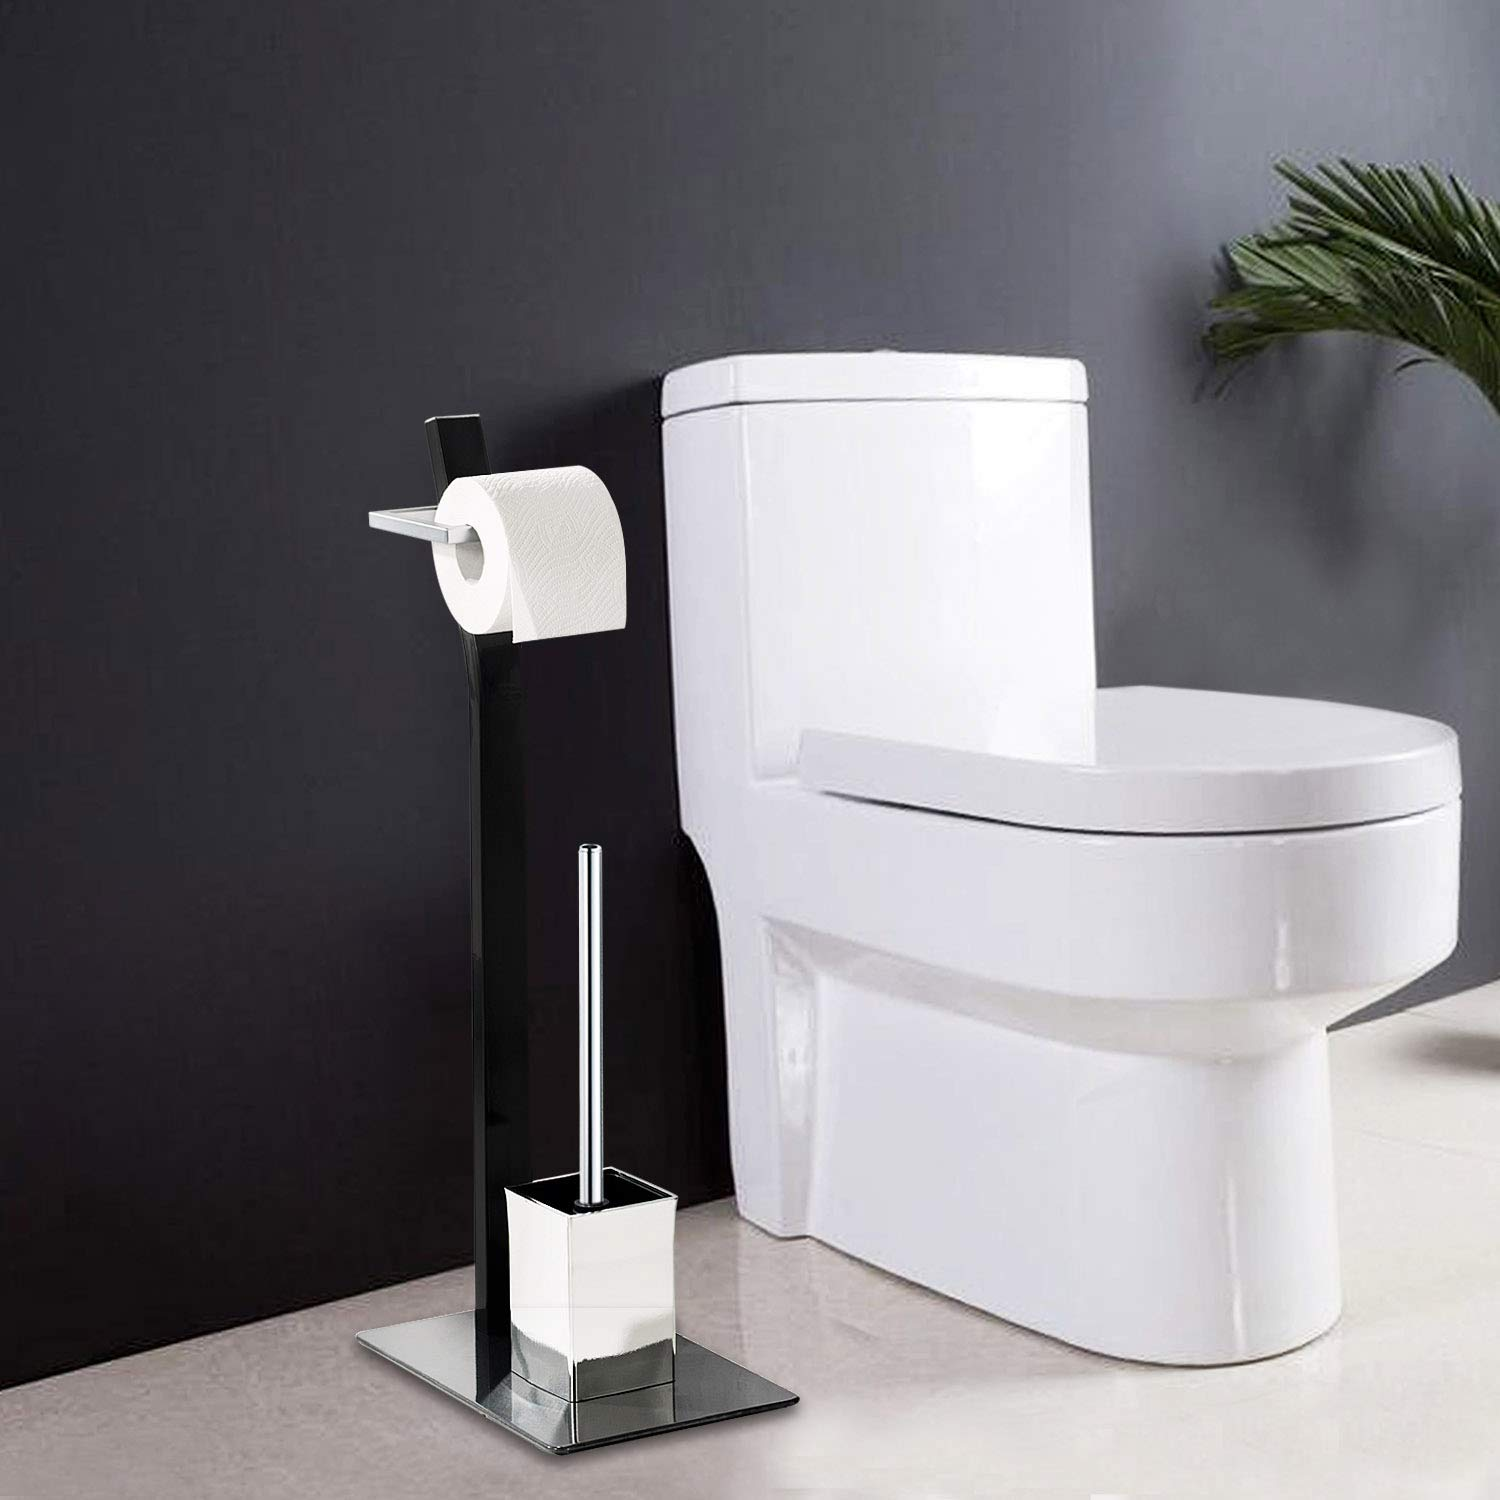 Free Standing Toilet Paper Holder Black Tissue Industrial Bathroom Toilet Brush And Holder Set Stand Silver by FOYUEE (Image #6)